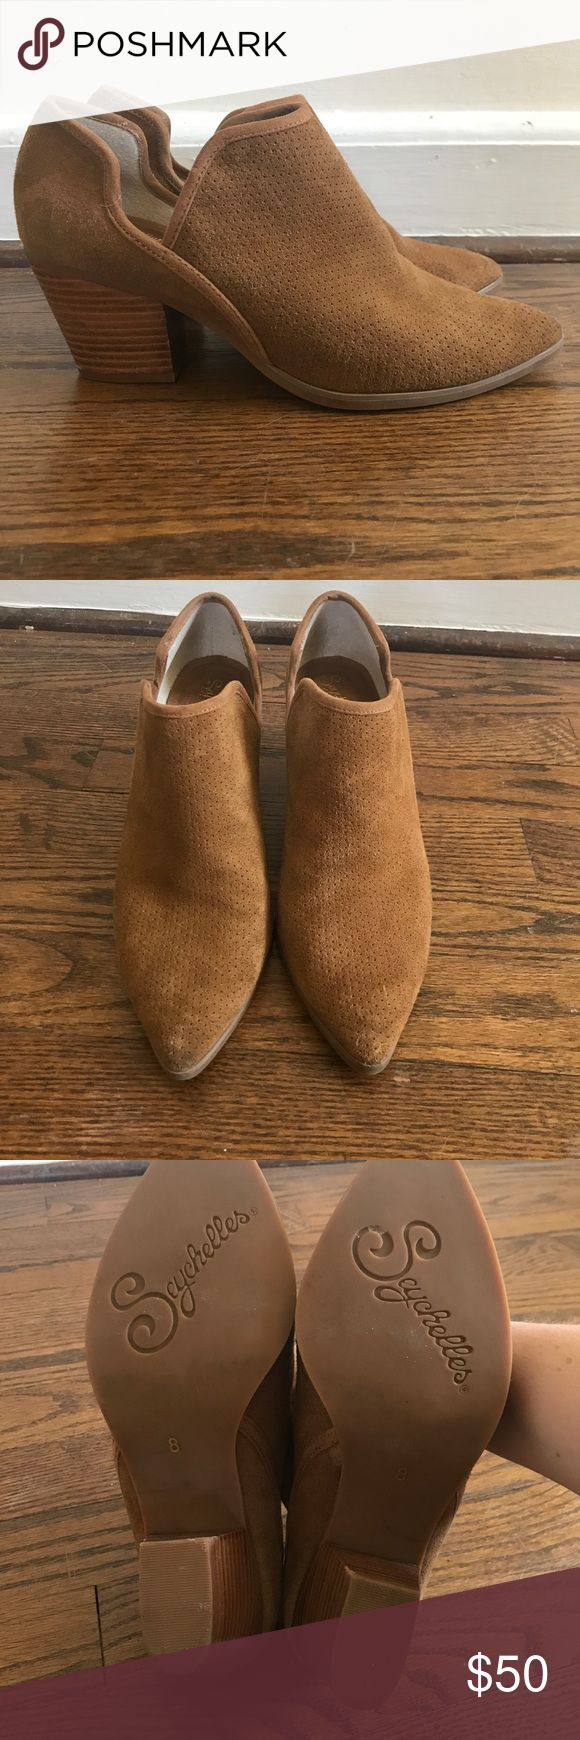 Seychelles from Anthropologie brown booties Little brown booties worn once. Perforated suede, super comfortable! Seychelles Shoes Ankle Boots & Booties